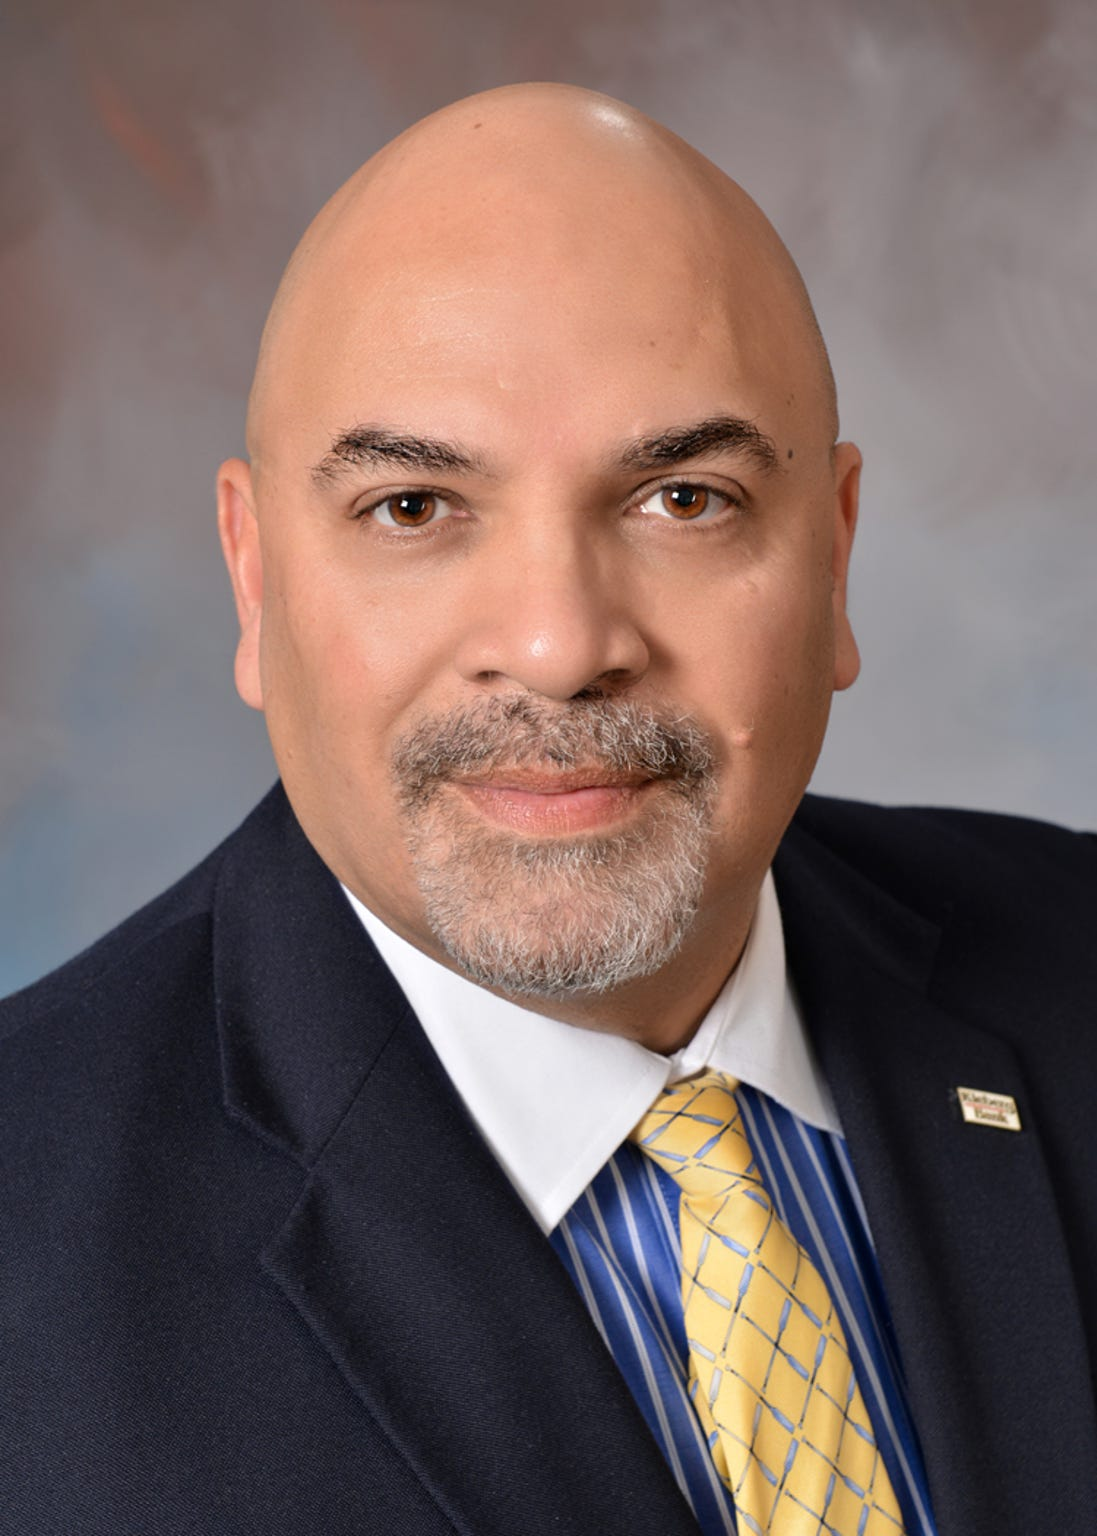 Everett Roy is running for Corpus Christi City Council District 1. The election is Nov. 6, 2018.